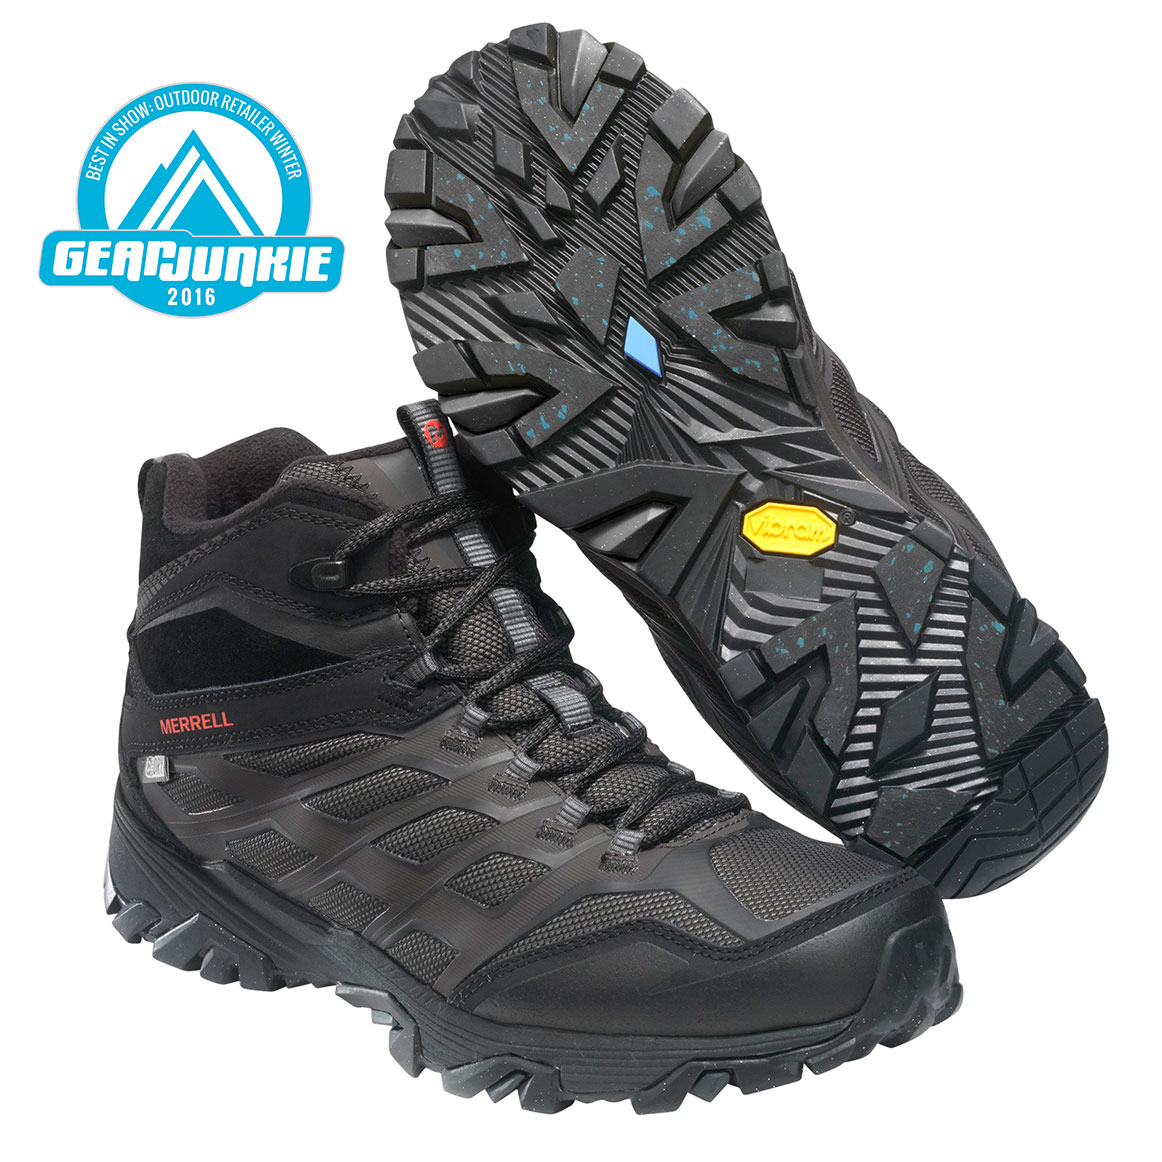 vibram-arctic-grip-sole